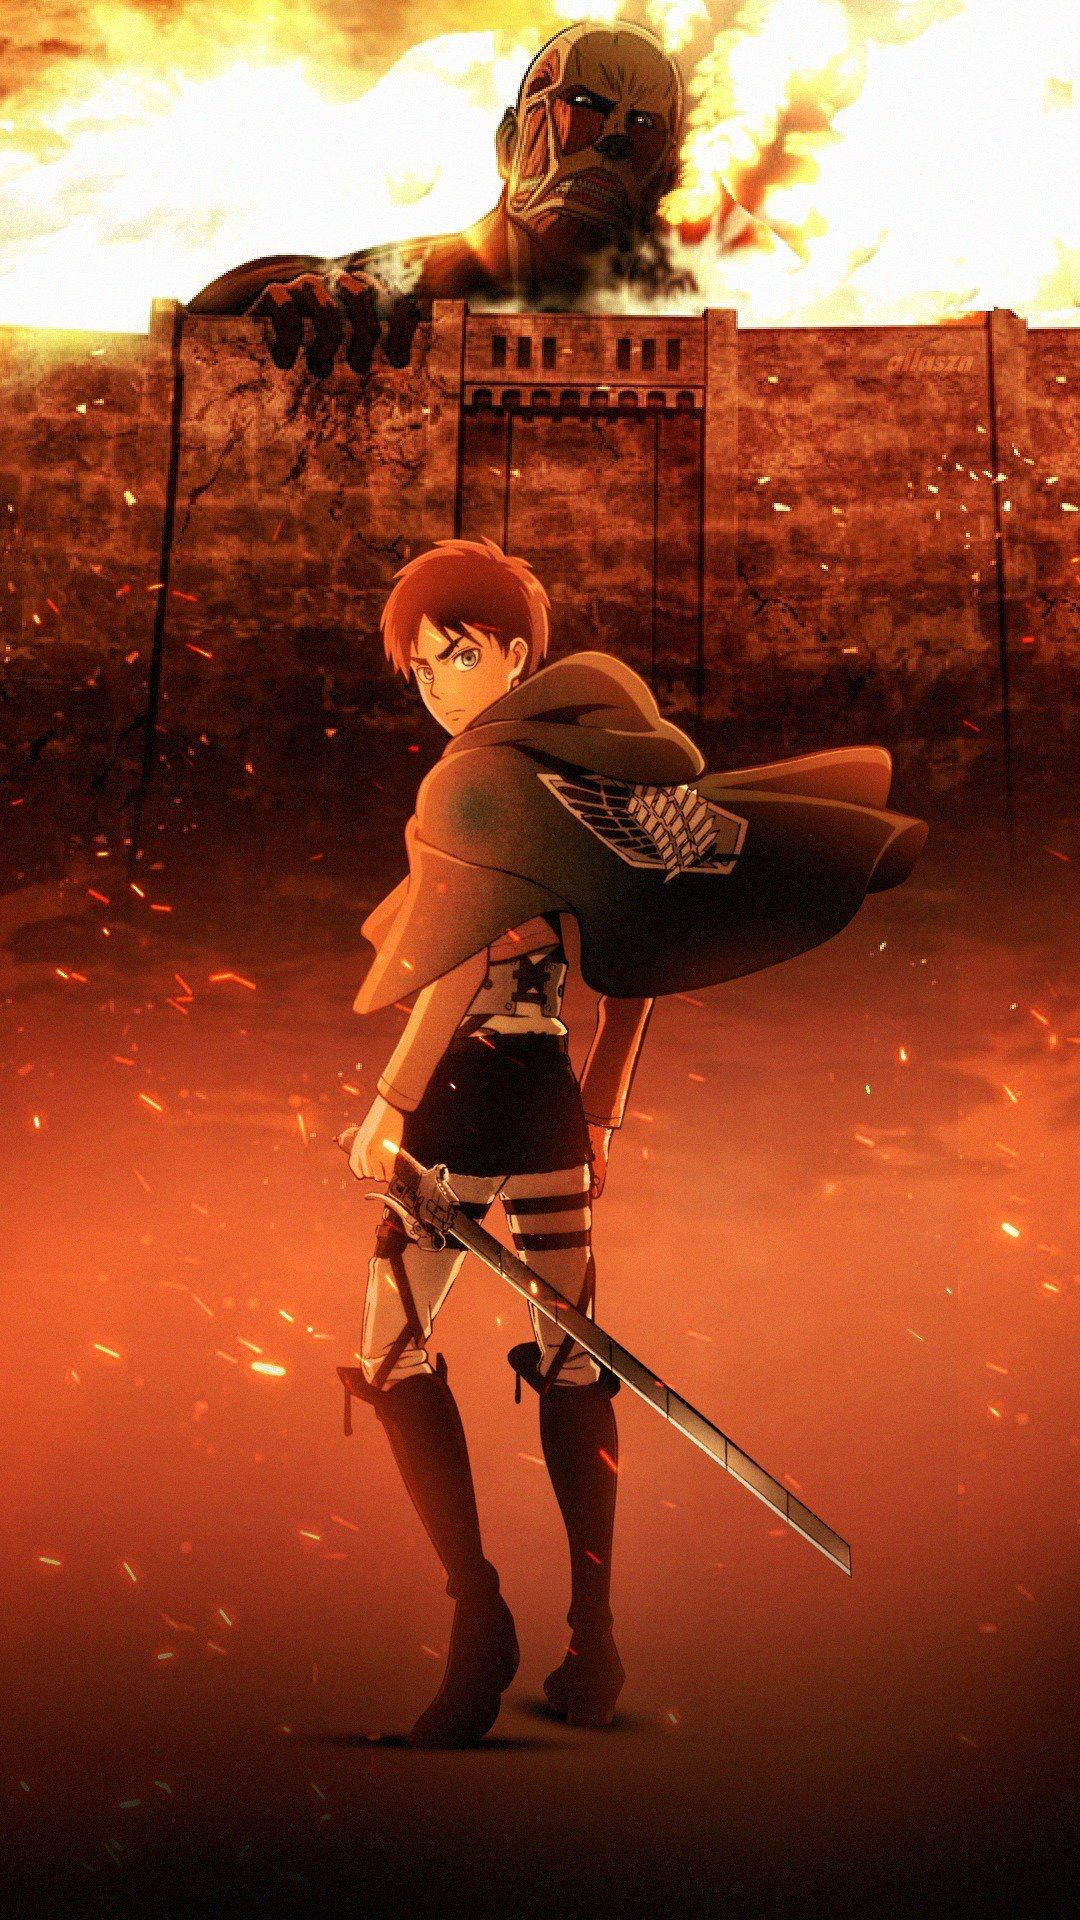 Yuriko nakao/getty images attack on titan is a popular anime series that has also spawned movies and video games. Eren Jaeger | Titans, Attaque des titans, Anime